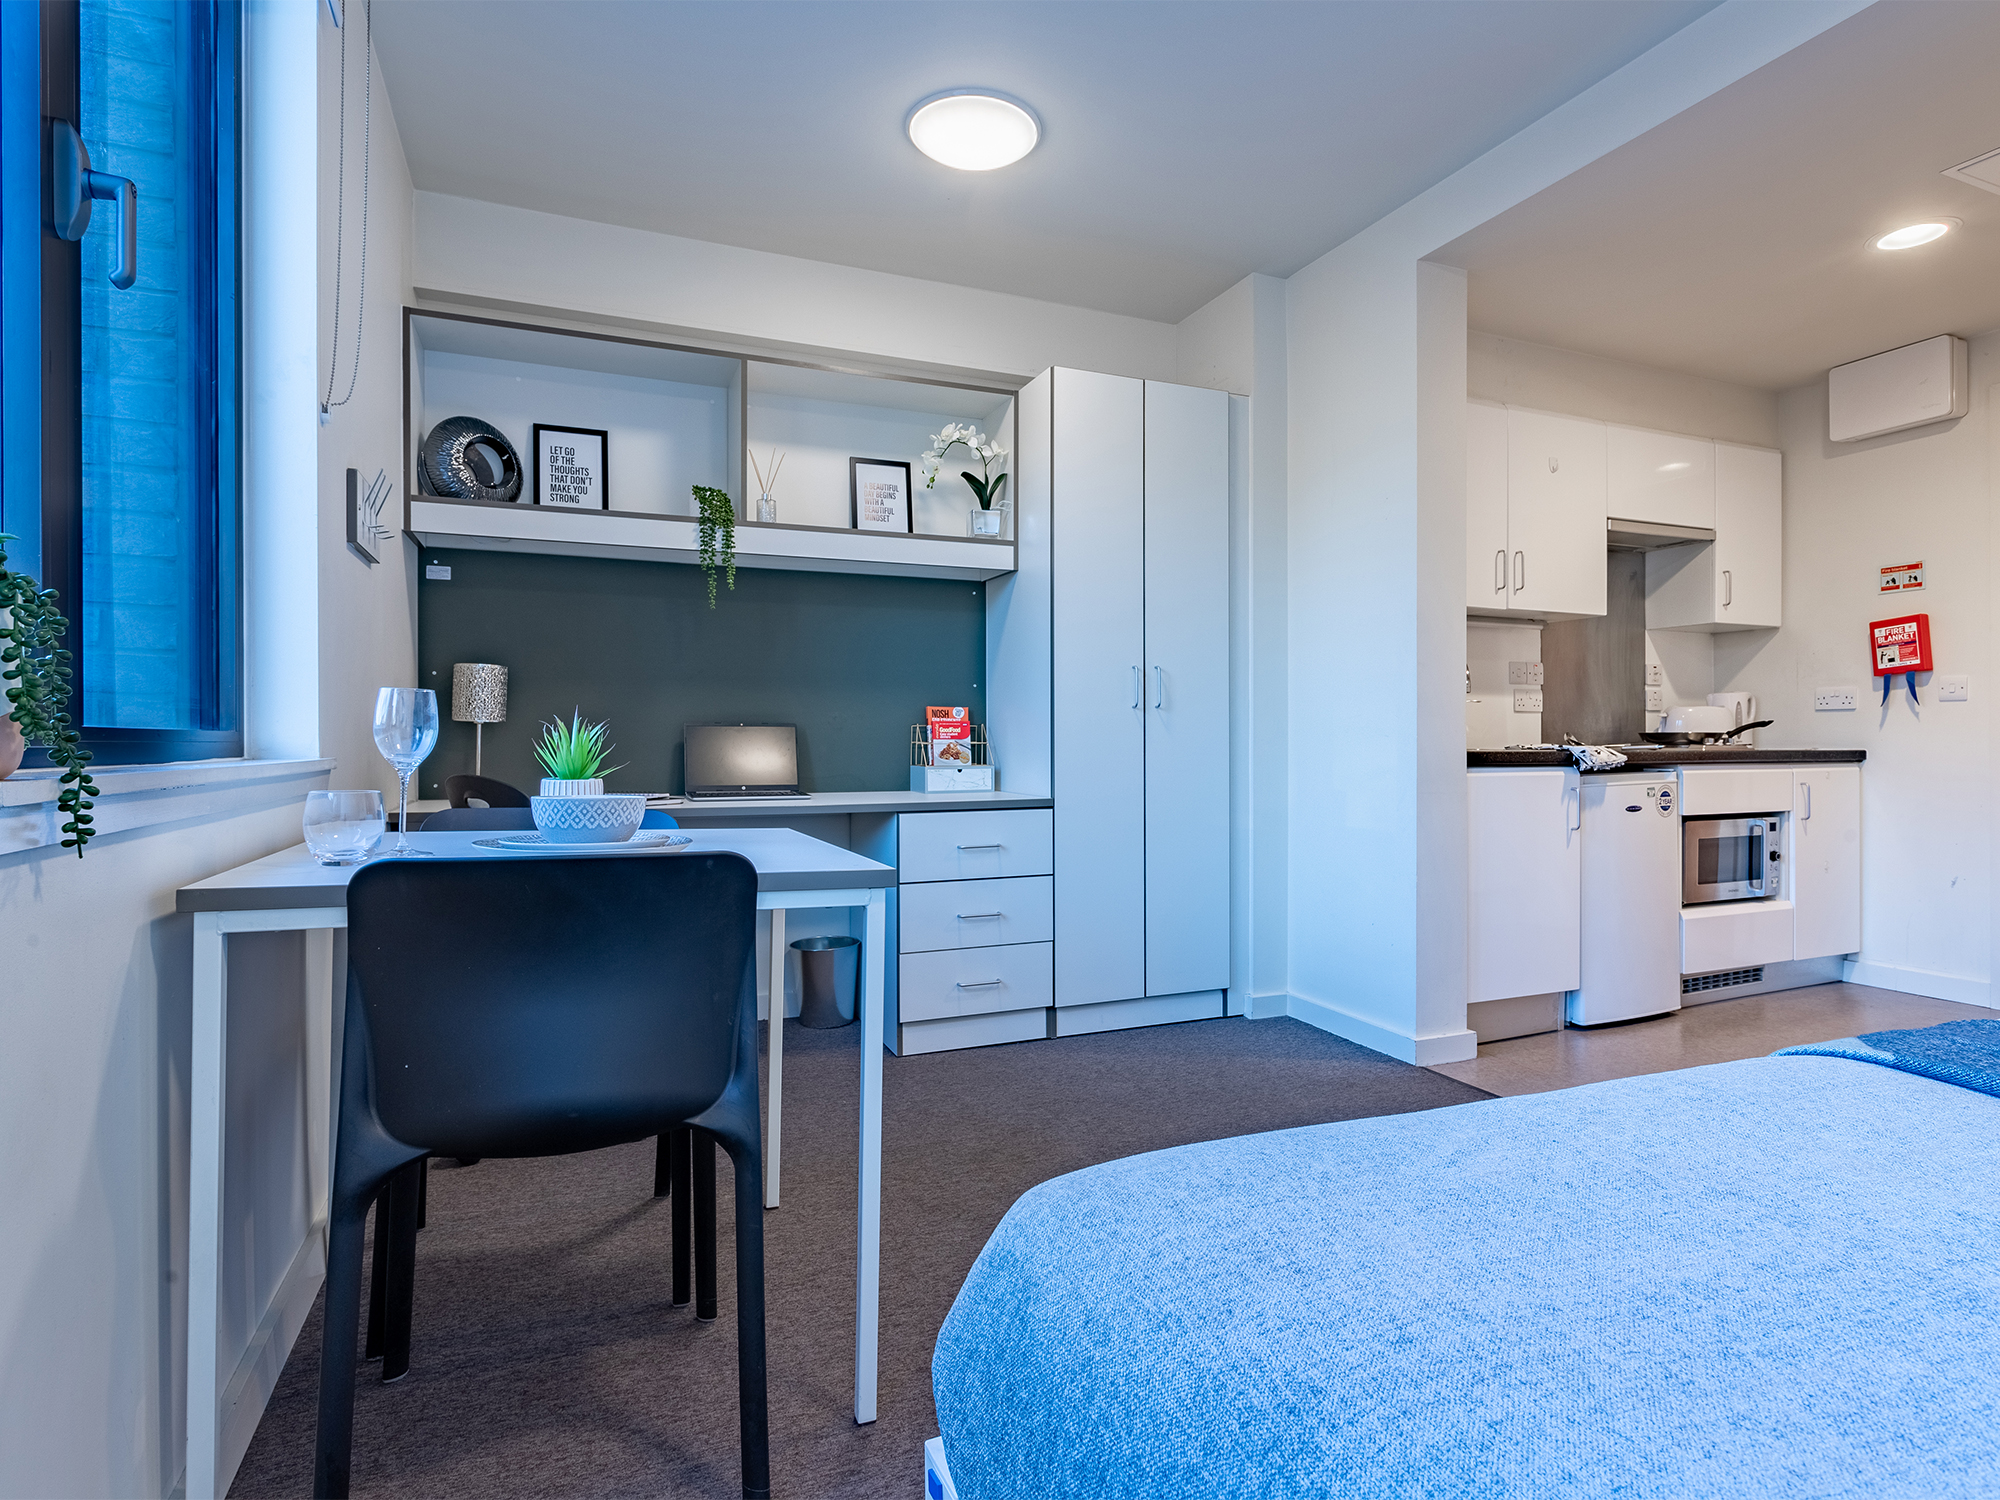 Classic Studio Powis Place Student Accommodation in Aberdeen